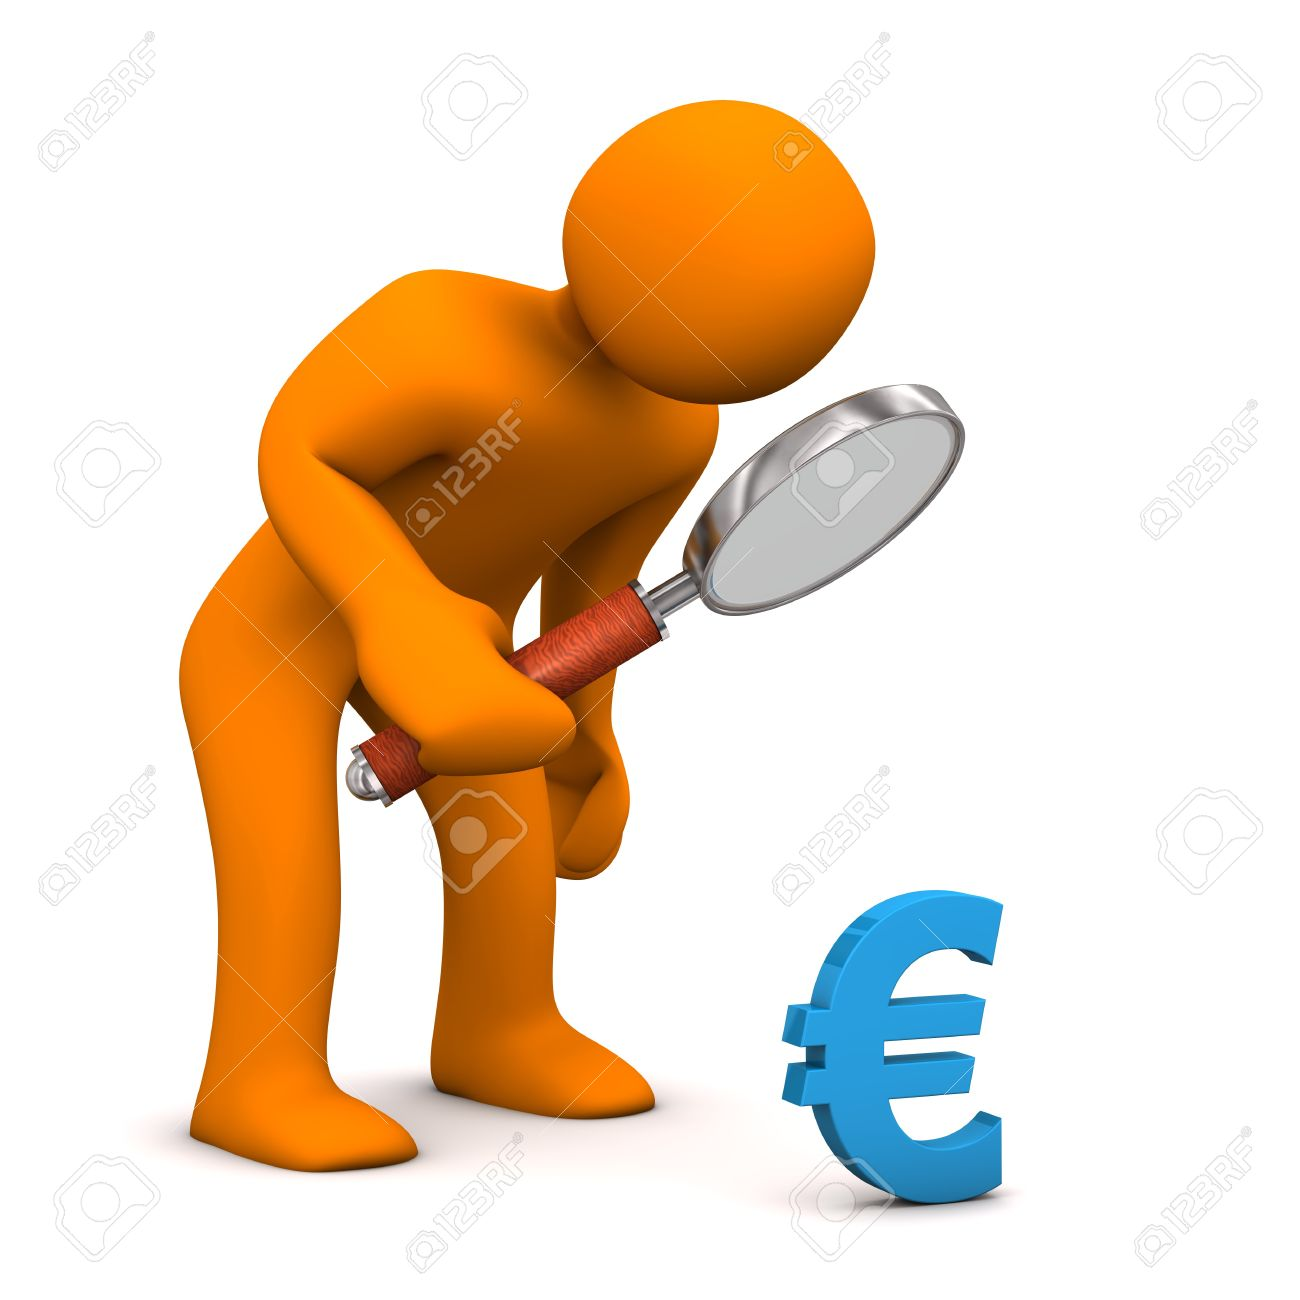 Orange Cartoon Character With Loupe And Blue Symbol Of Euro Stock